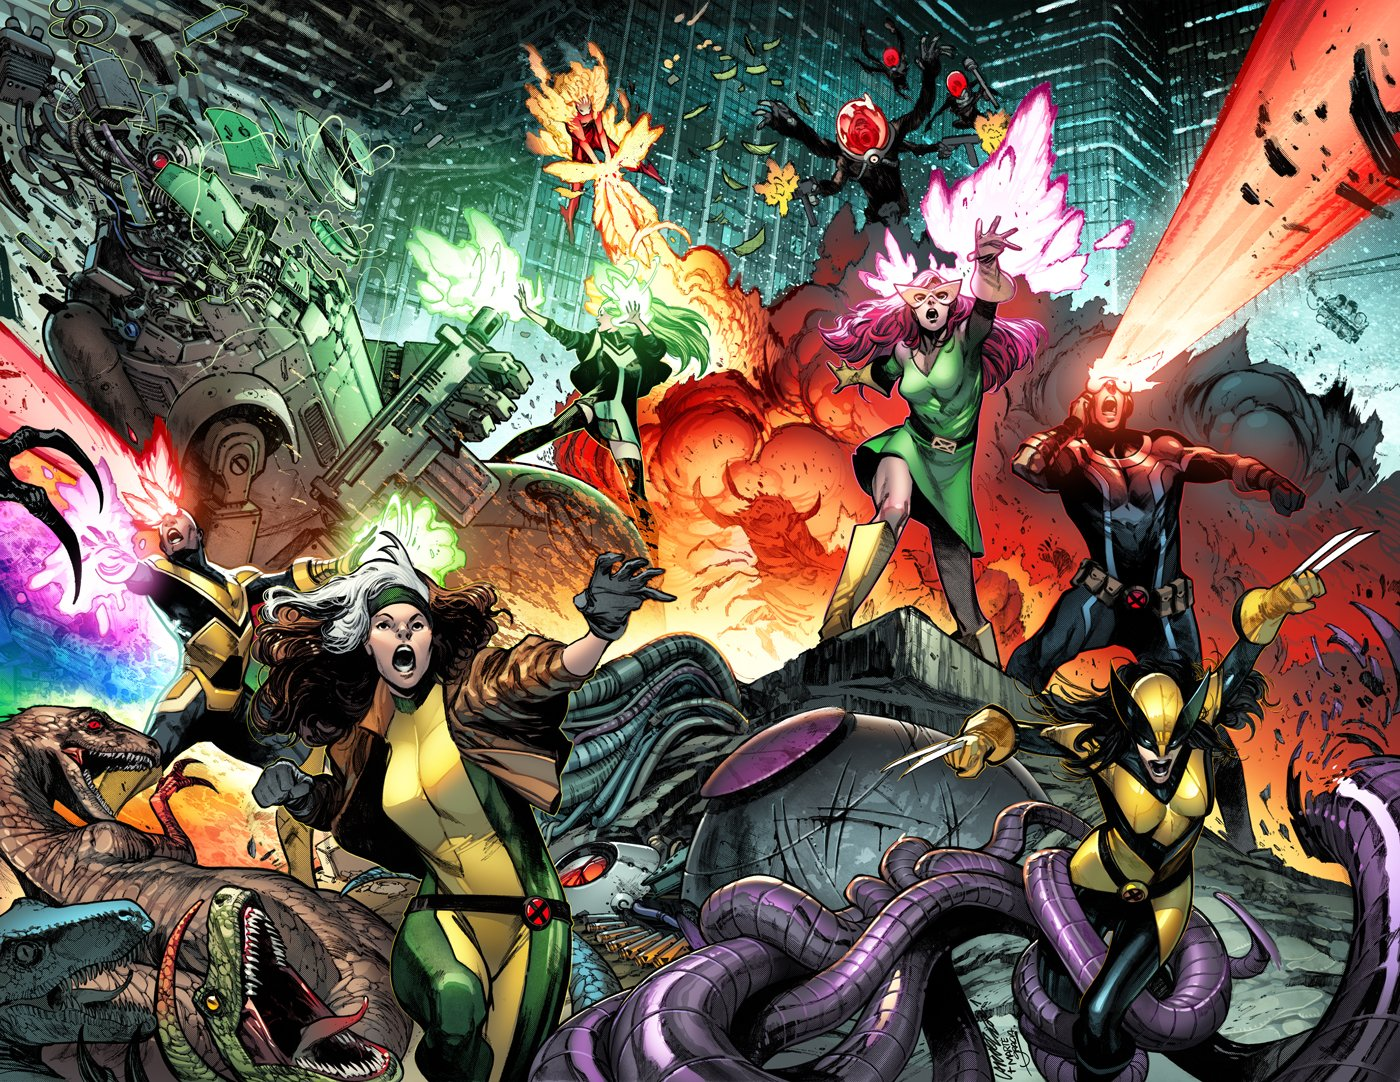 The X-Men — Sunfire, Polaris, Jean Grey, Cyclops, Sync, rogue, and Wolverine (X-23/Laura Kinney) battle all manner of bad guys — dinosaurs, multiarmed gun-toting soldiers, robots, tentacles — across a cityscape on the cover of X-Men #1 (2021).